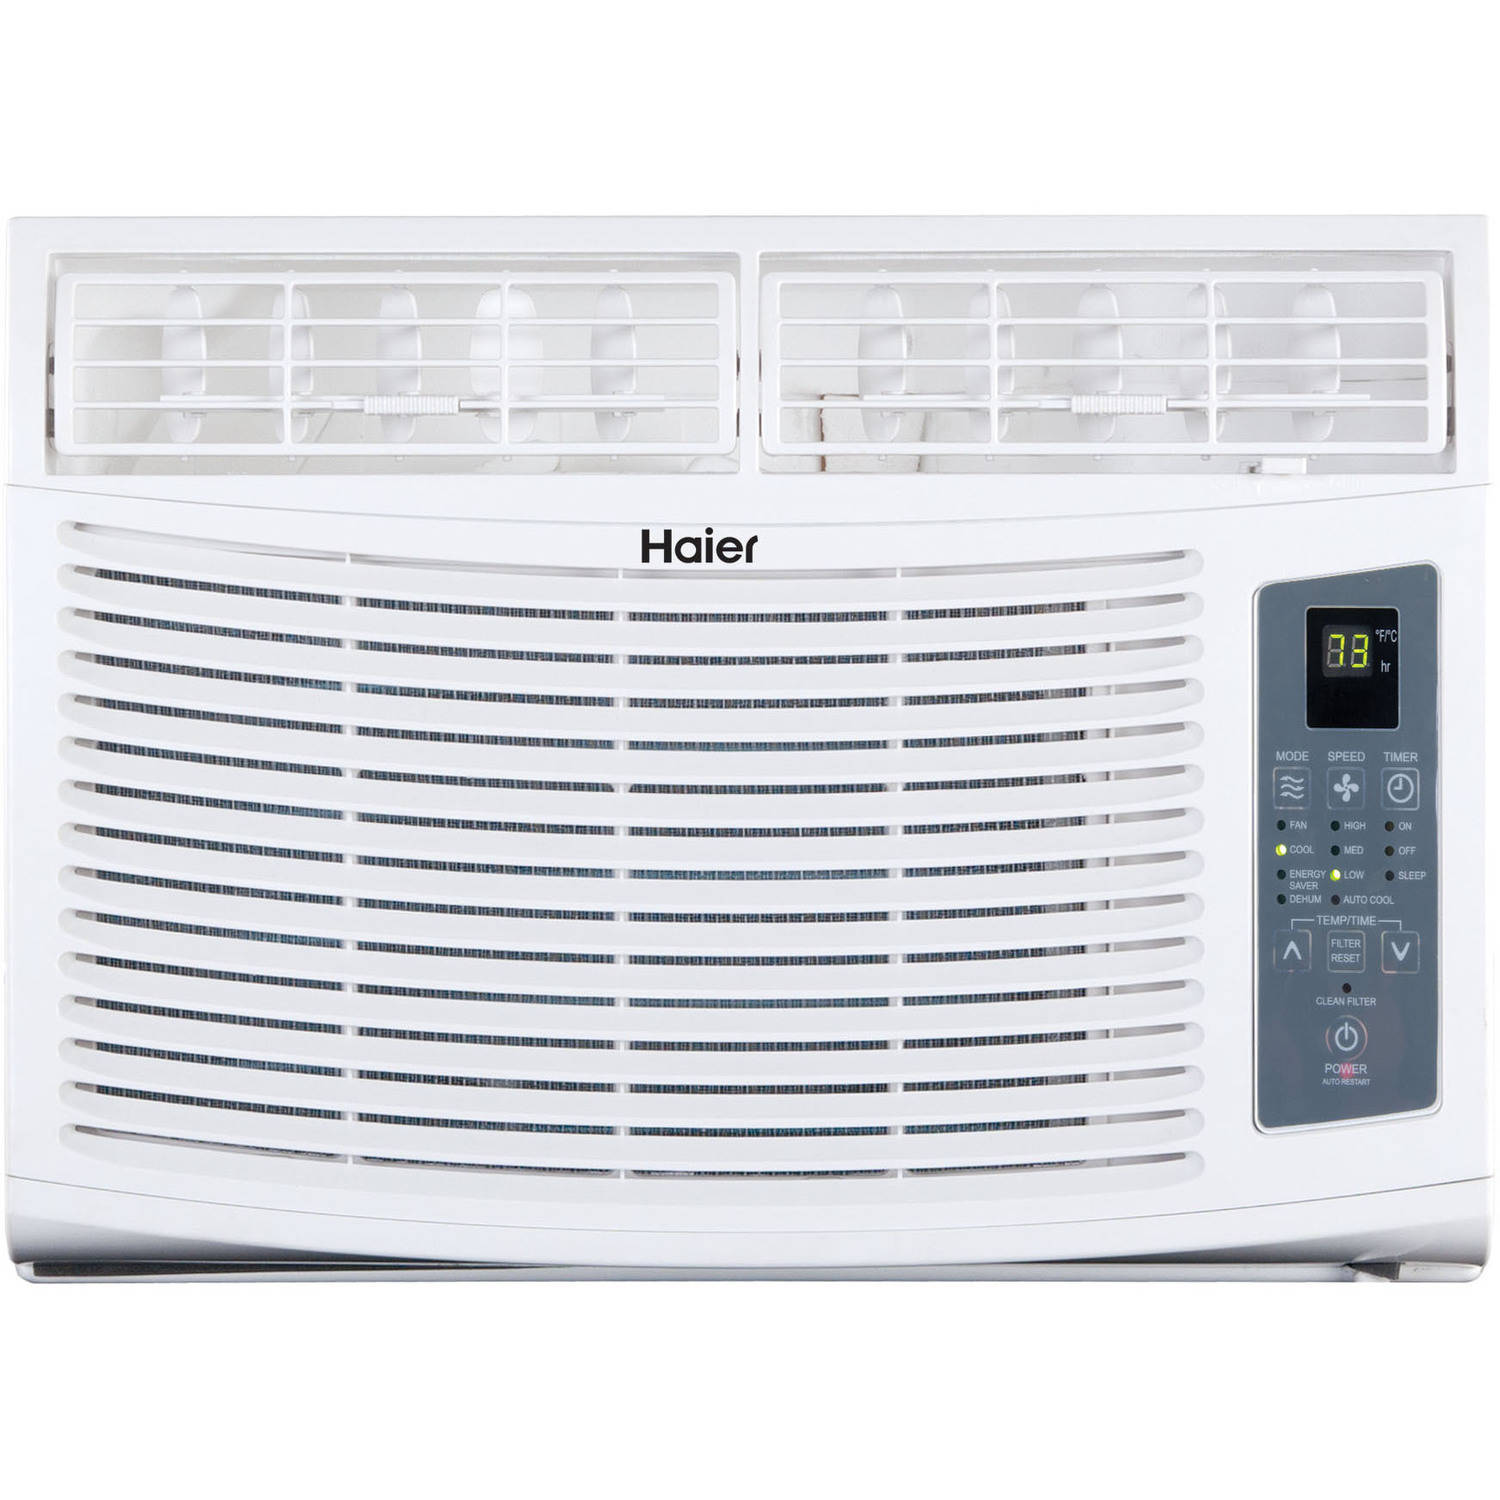 Haier HWE12XCRLD 12,000 BTU 11.2 Ceer Electronic Control Air Conditioner